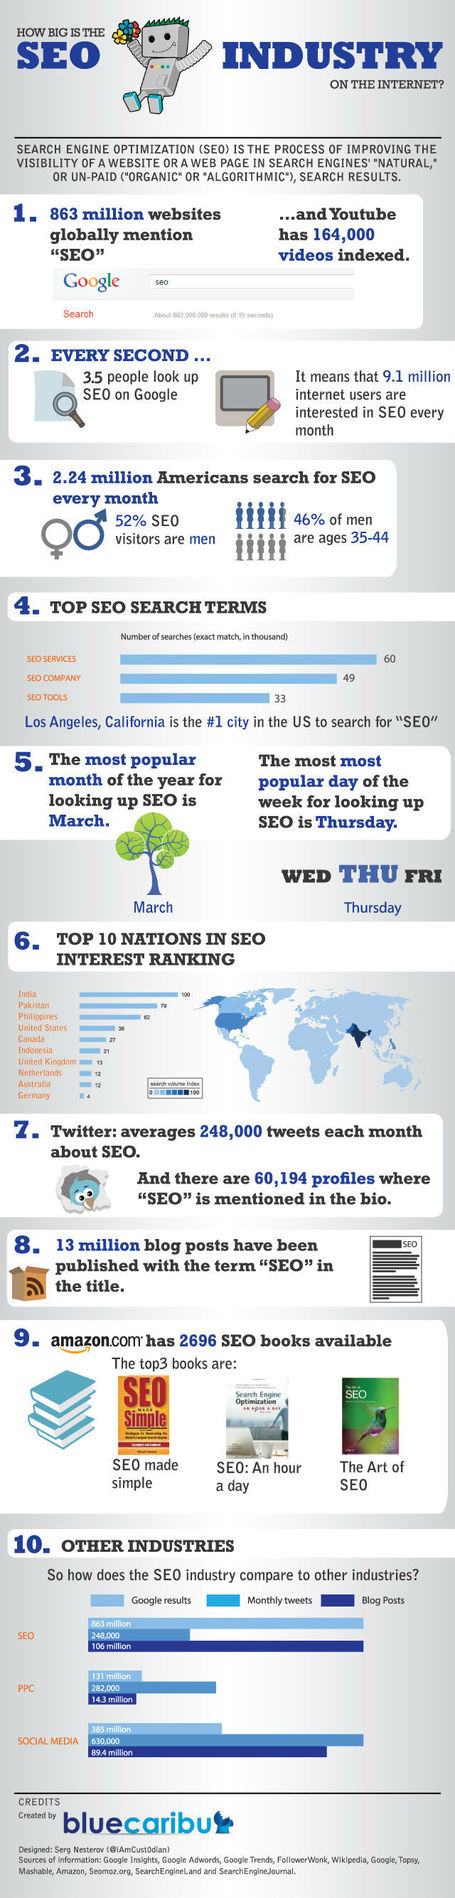 DR4WARD: How Big Is The SEO Industry On The Internet? #infographic | Tracking Transmedia | Scoop.it